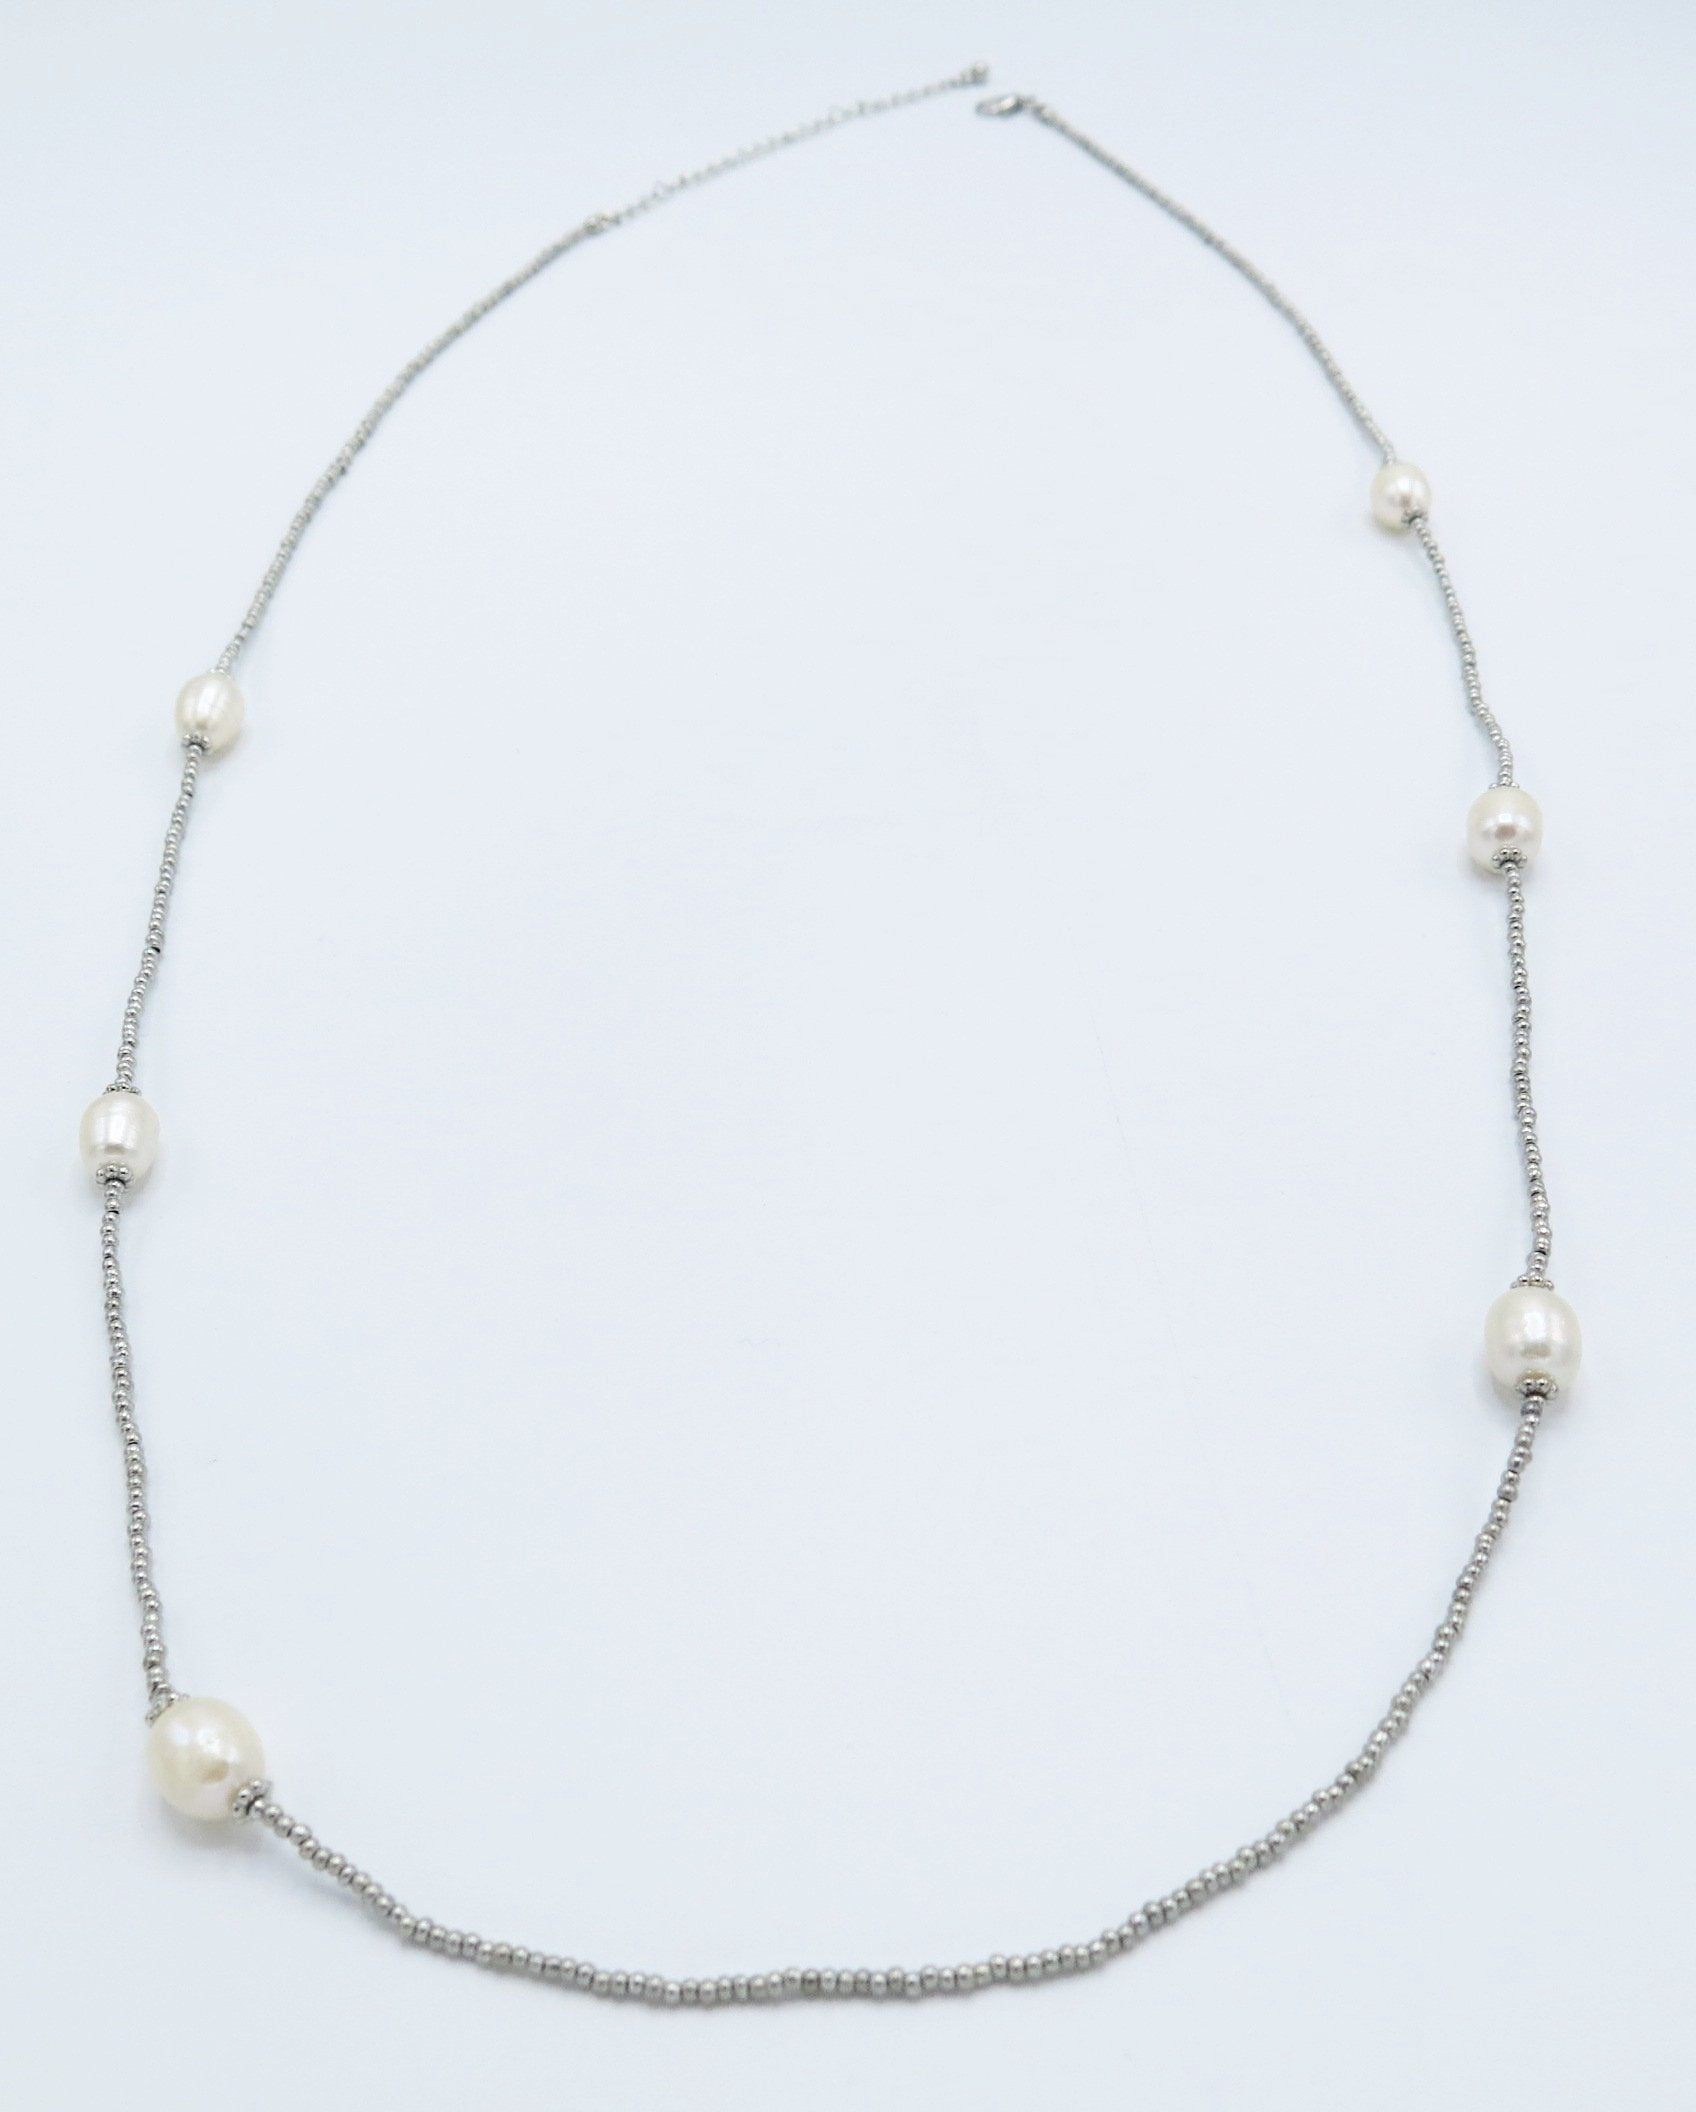 Long Silver Beaded Necklace with Pearls in Silver